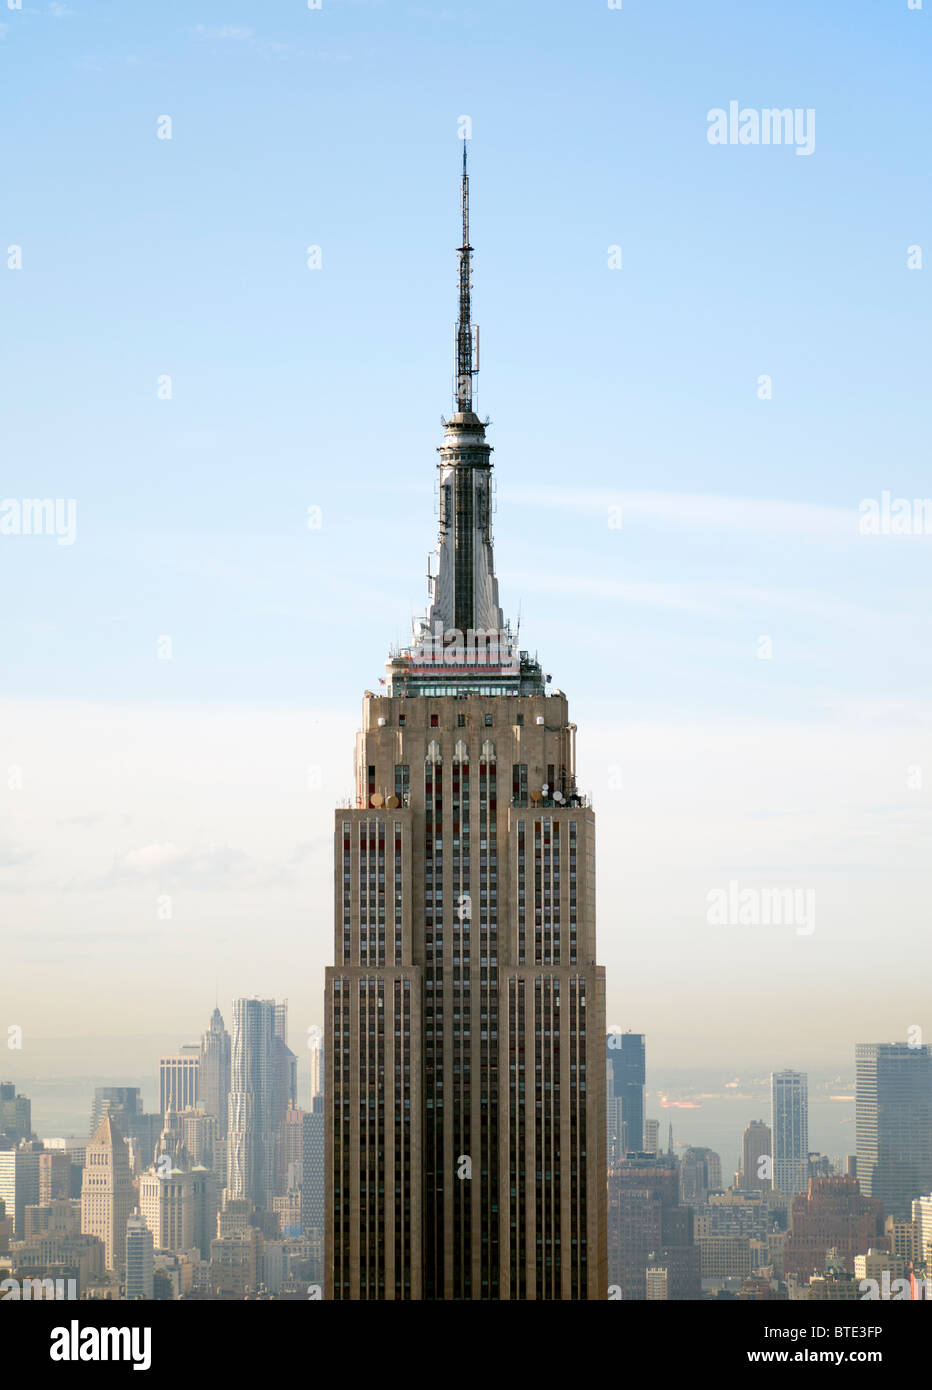 View of the Empire State Building in Manhattan New York City USA - Stock Image